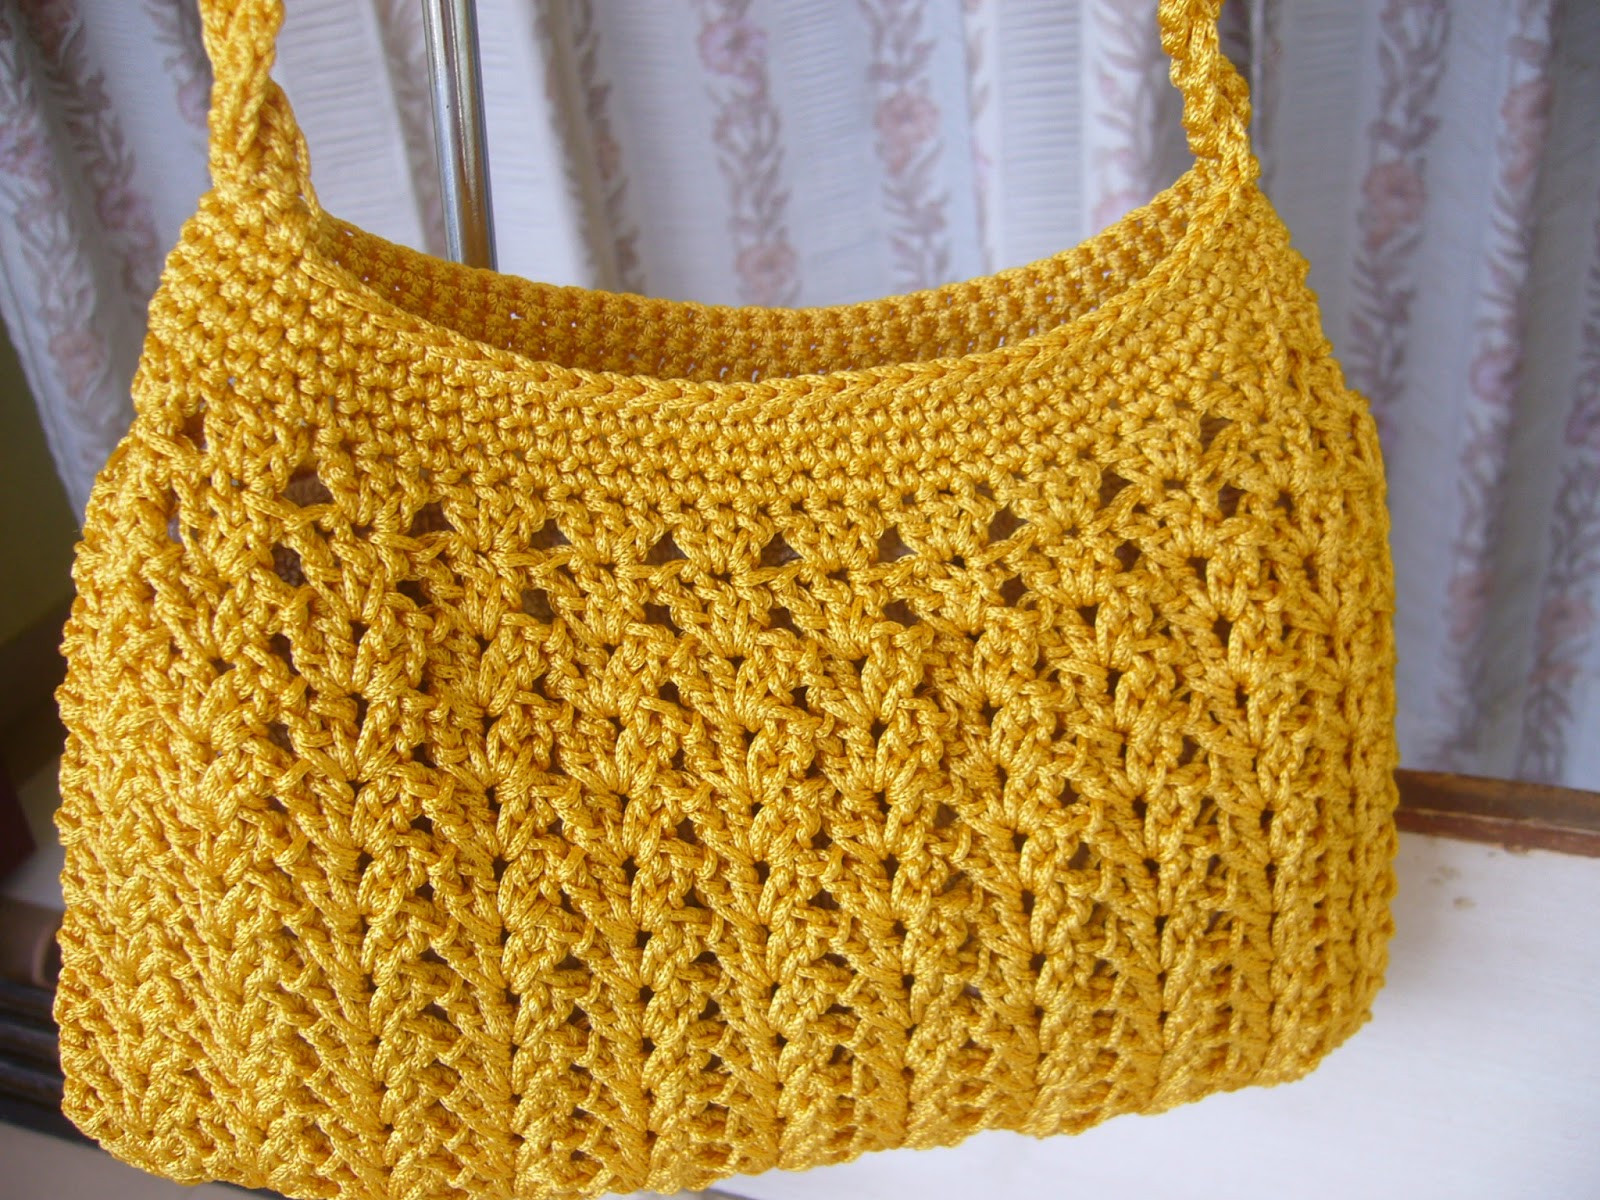 Free Crochet Bag Patterns Unique Crochetkari Golden Yellow Crochet Purse Of Awesome 45 Ideas Free Crochet Bag Patterns